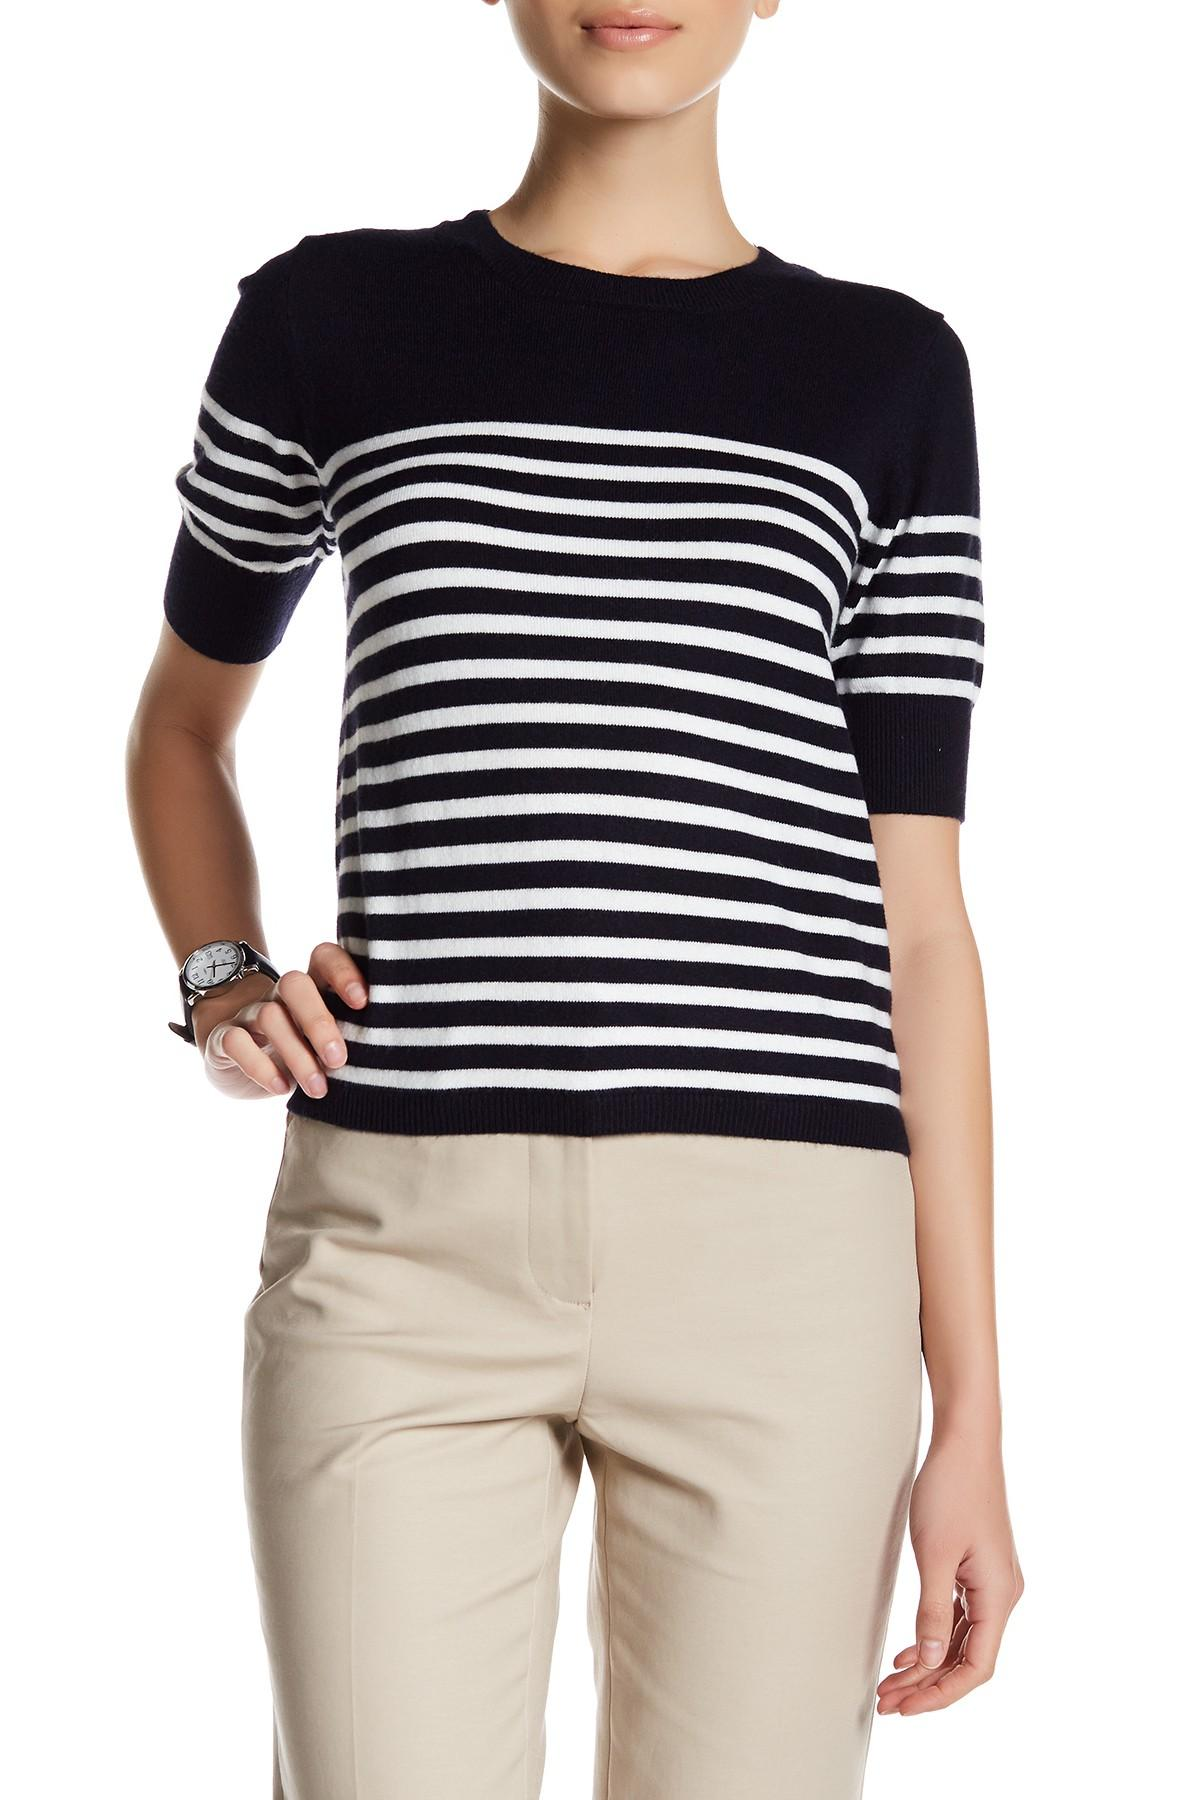 Lyst - Premise Studio Elbow Length Sleeve Striped Sweater